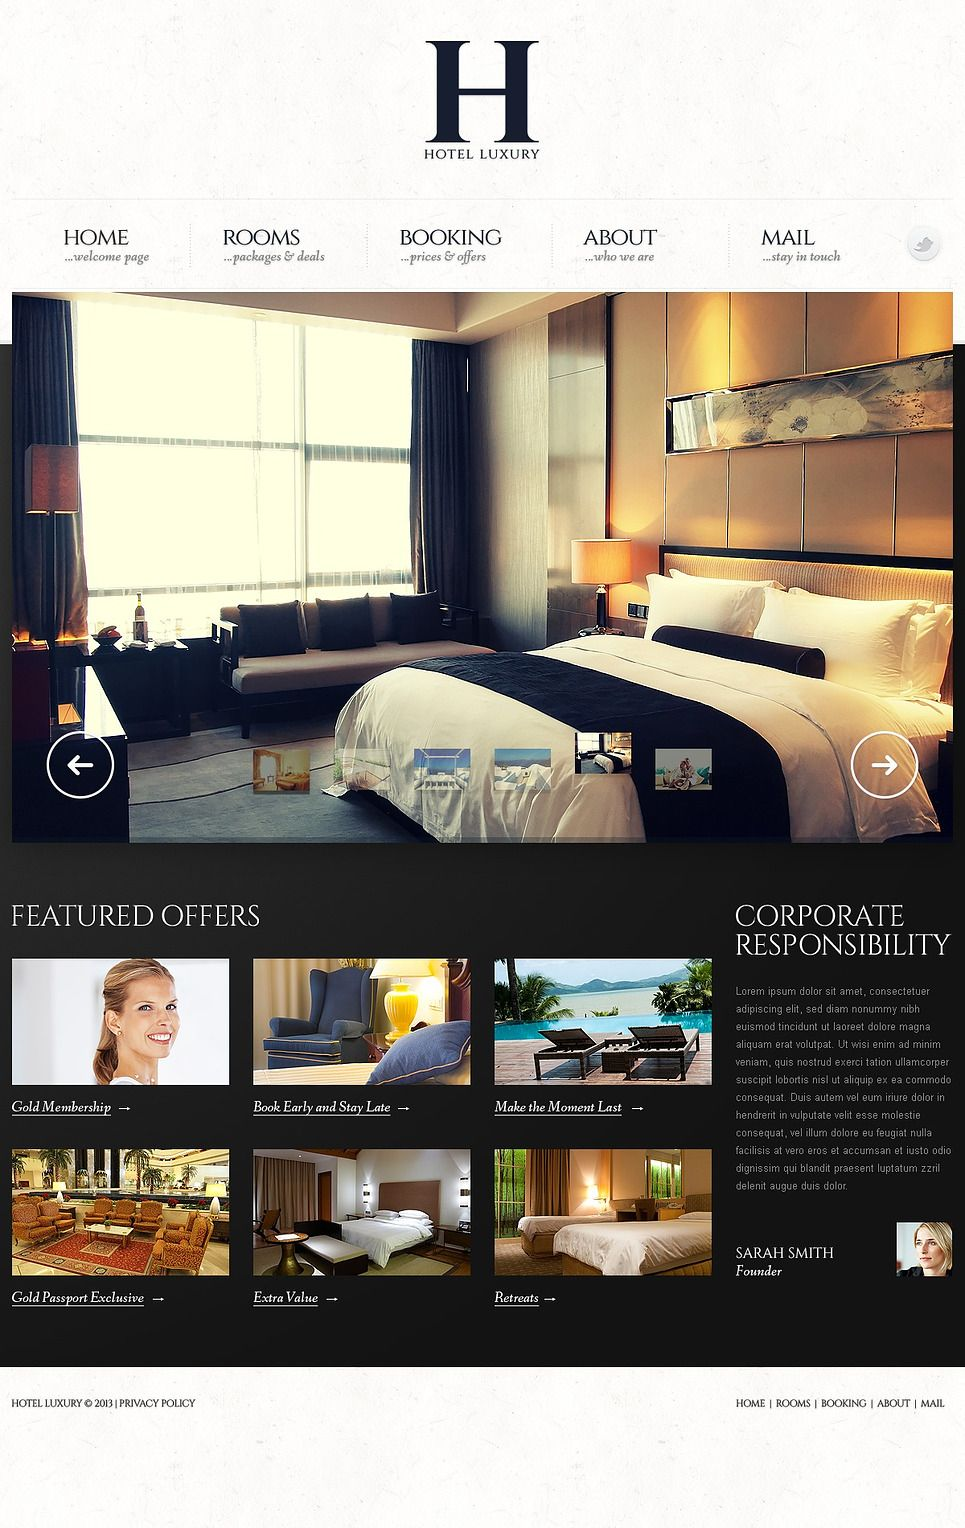 Hotel luxury website templates by astra hotel event booking hotel luxury website templates by astra pronofoot35fo Choice Image